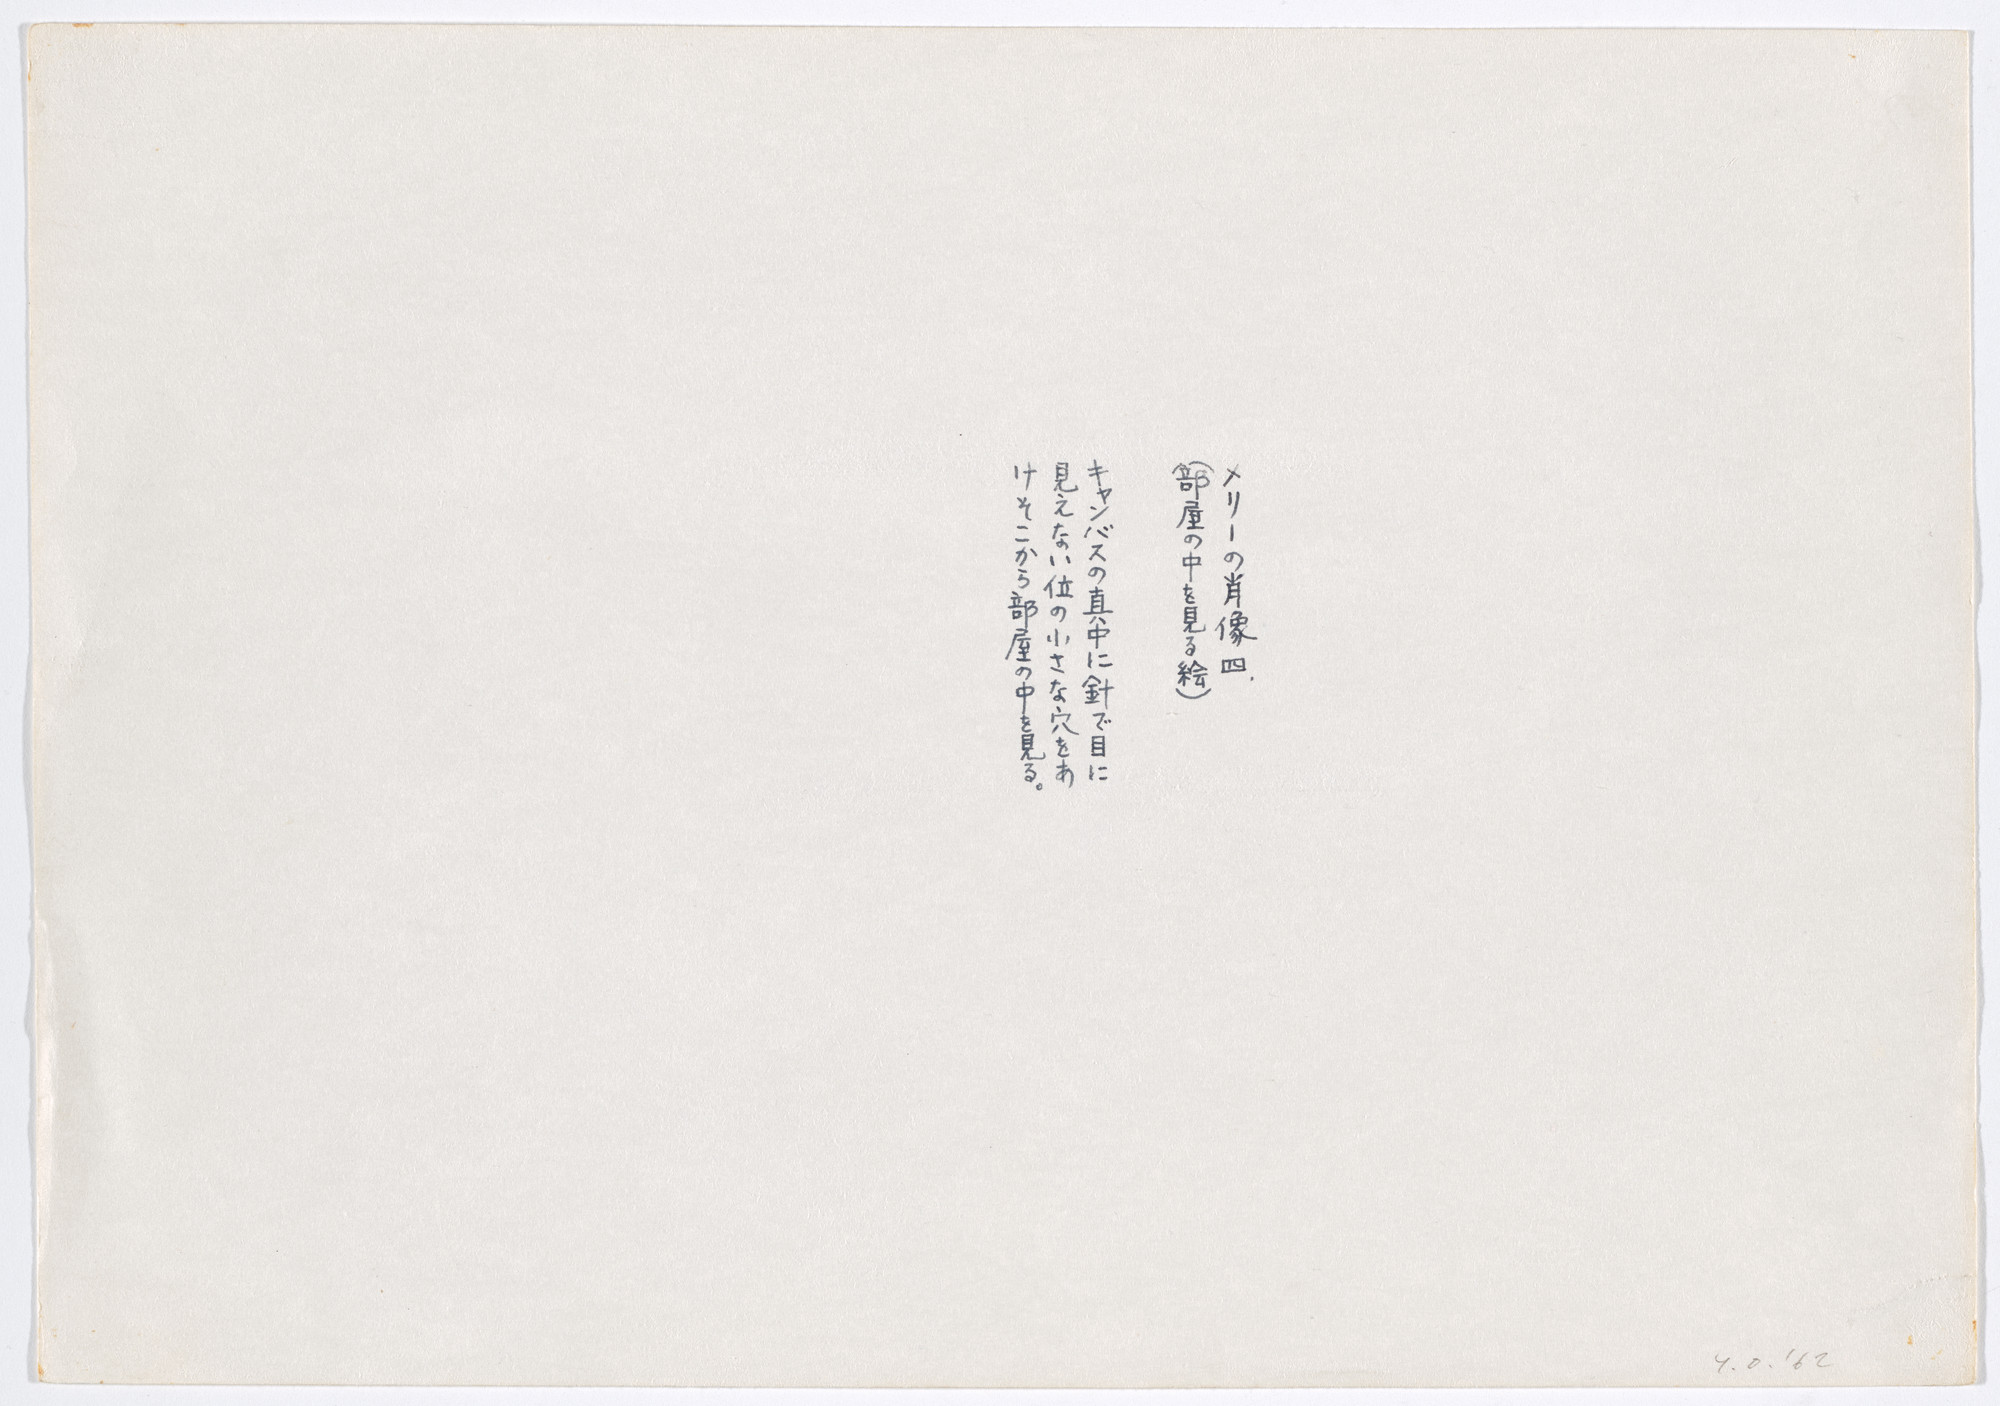 Yoko Ono. Painting to See the Room. 1961